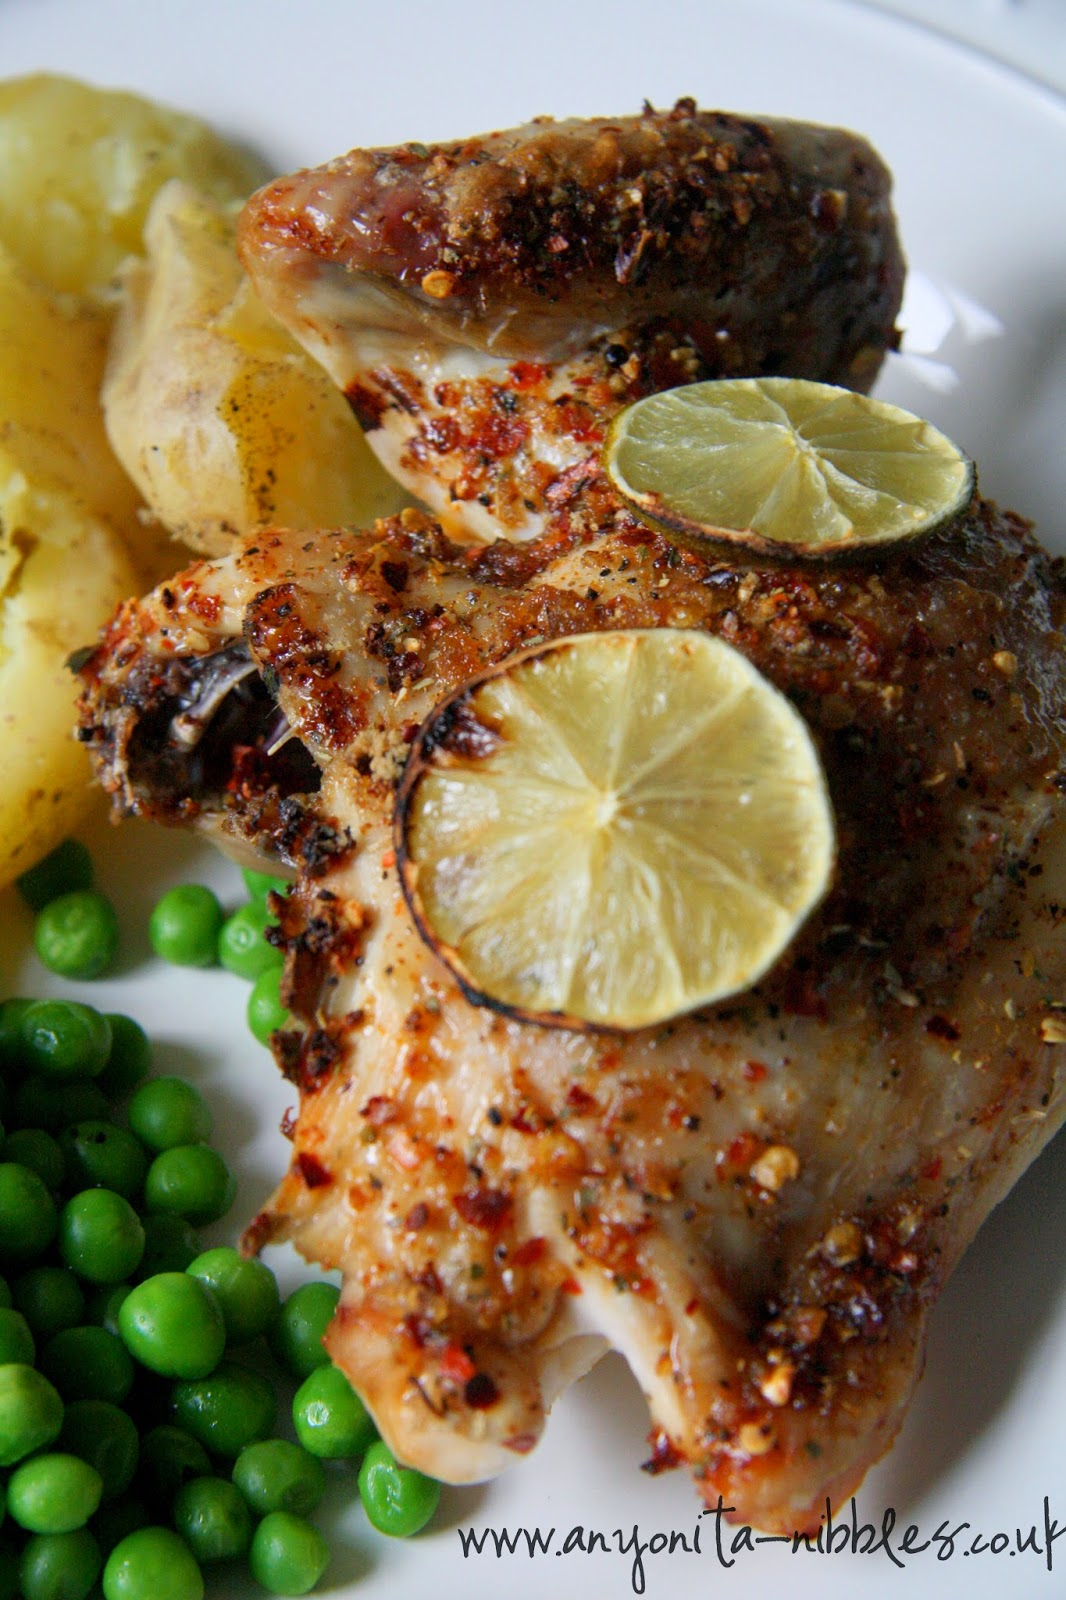 Chicken breast quarter with peri-peri, lime and potatoes and peas from www.anyonita-nibbles.co.uk